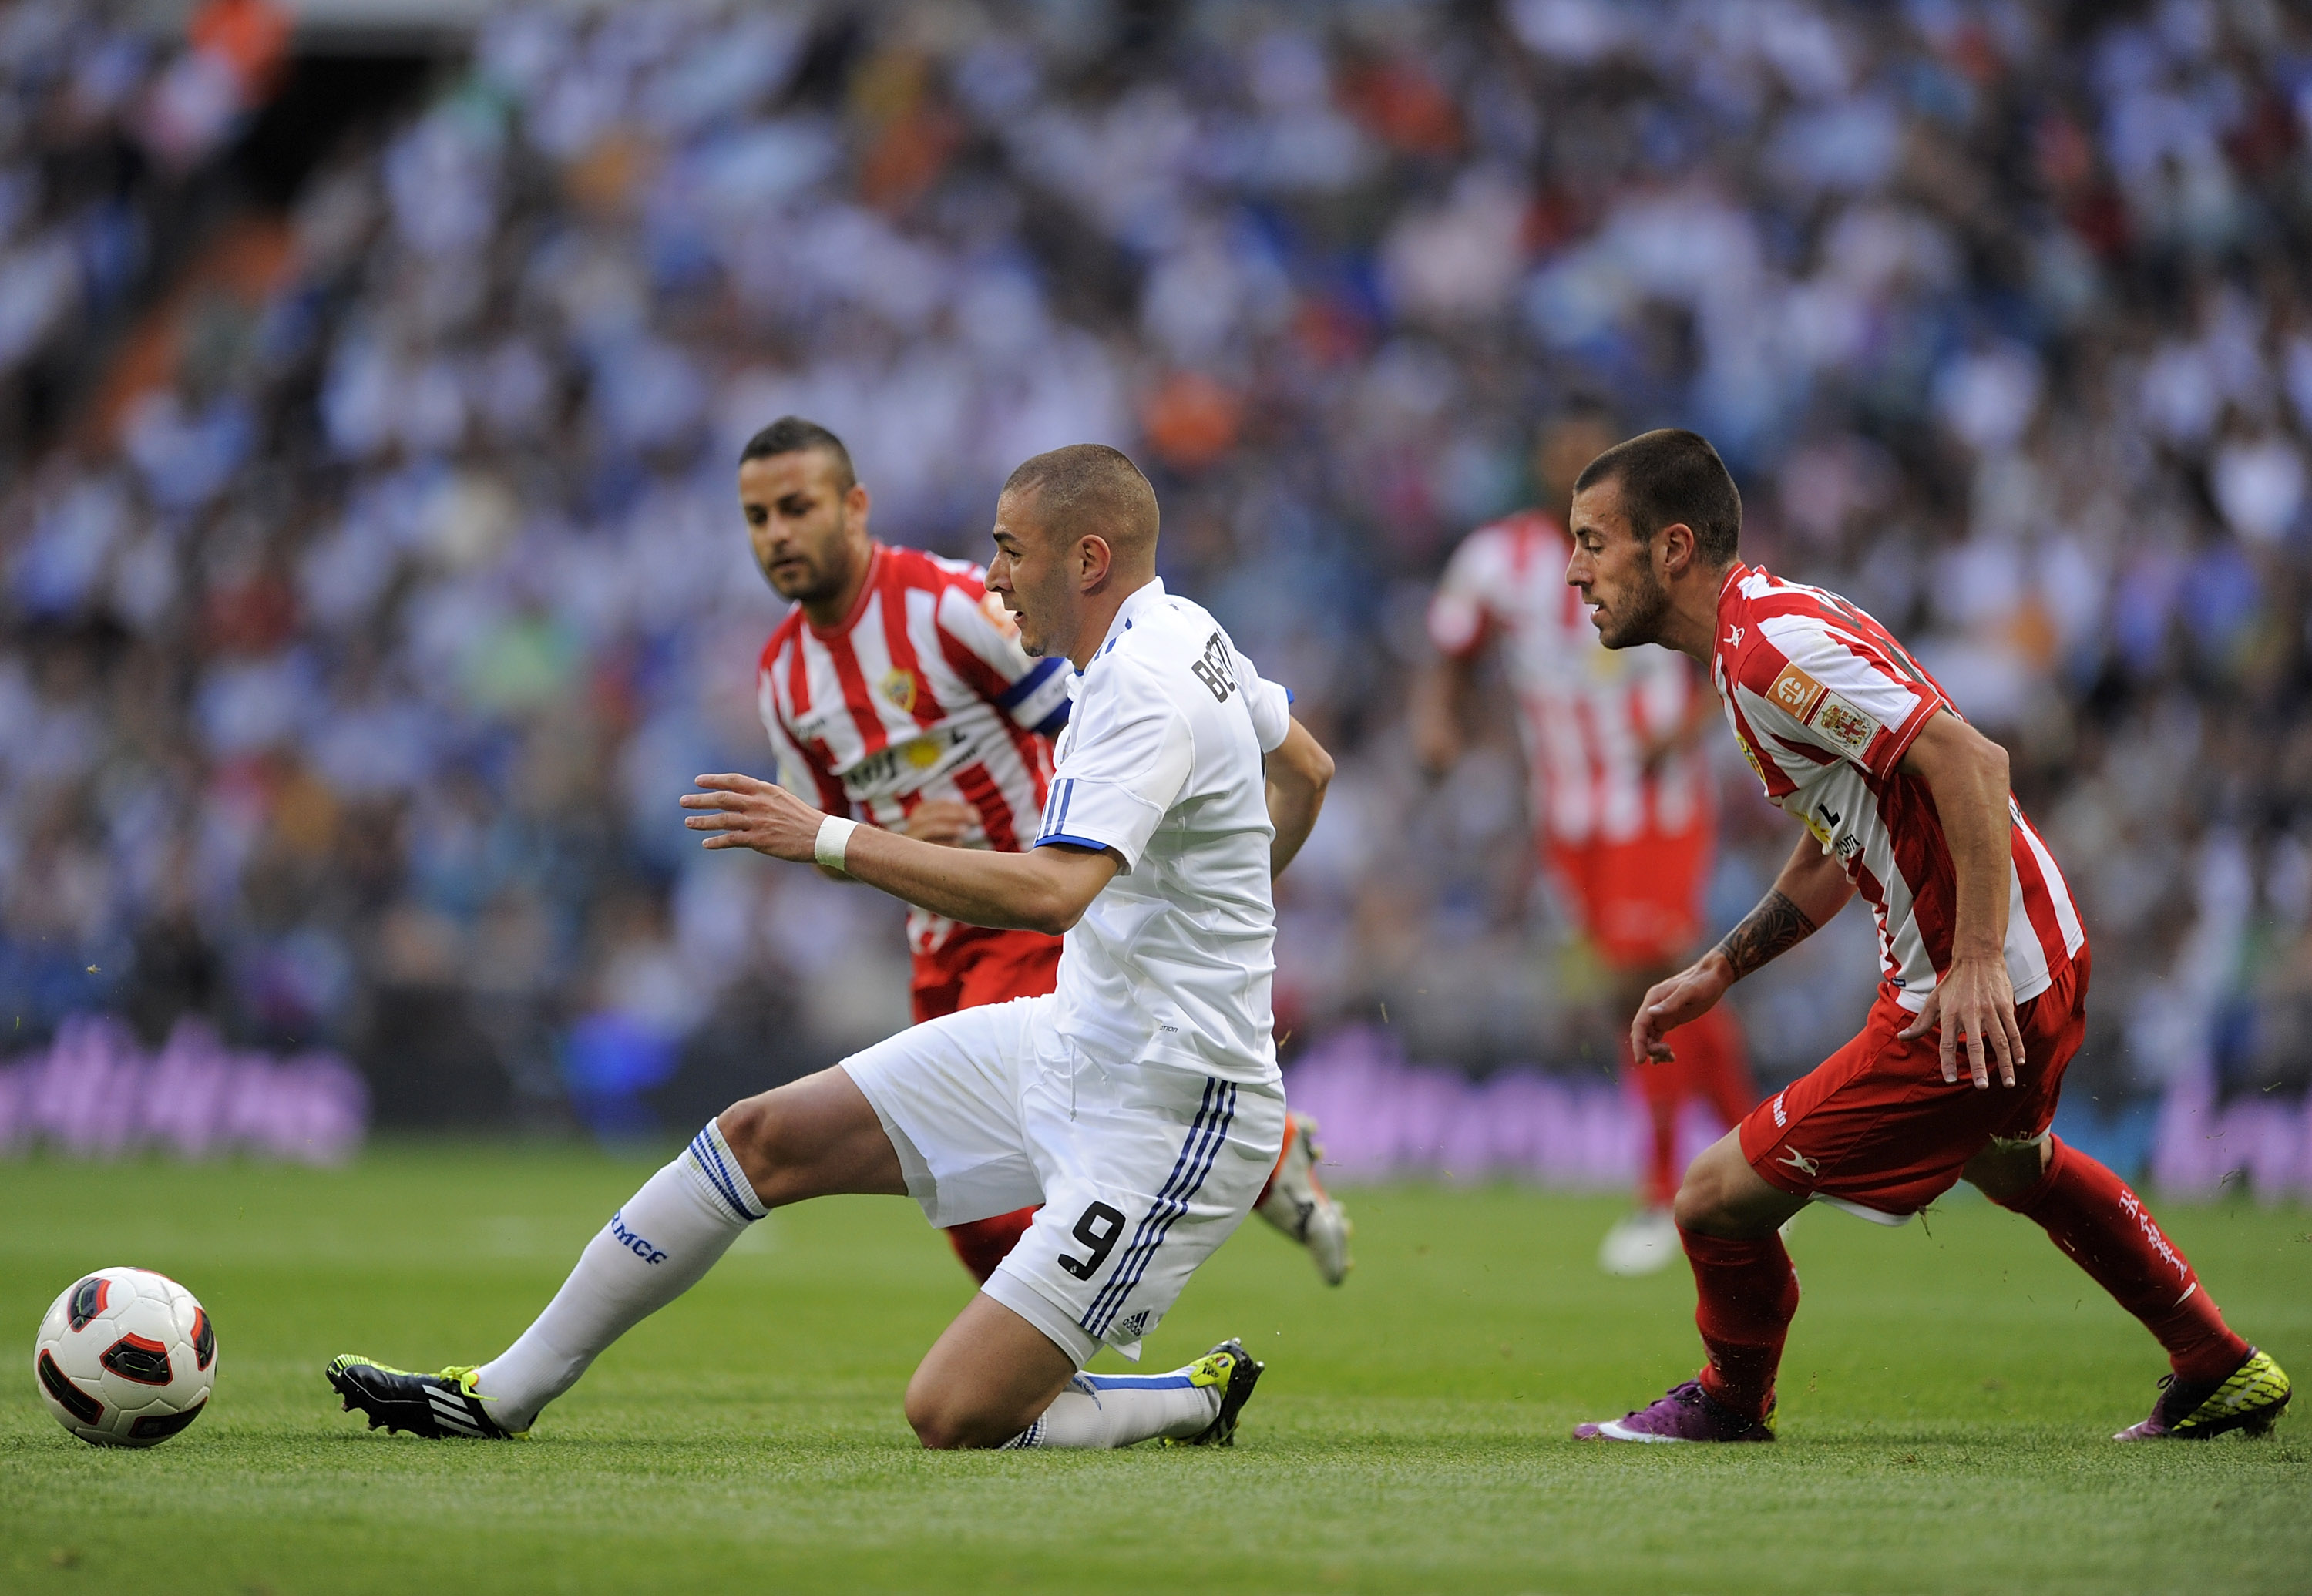 MADRID, SPAIN - MAY 21:  Karim Benzema (L) of Real Madrid passes the ball beside Rigo of UD Almeria during the La Liga match between Real Madrid and UD Almeria at Estadio Santiago Bernabeu on May 21, 2011 in Madrid, Spain.  (Photo by Denis Doyle/Getty Ima